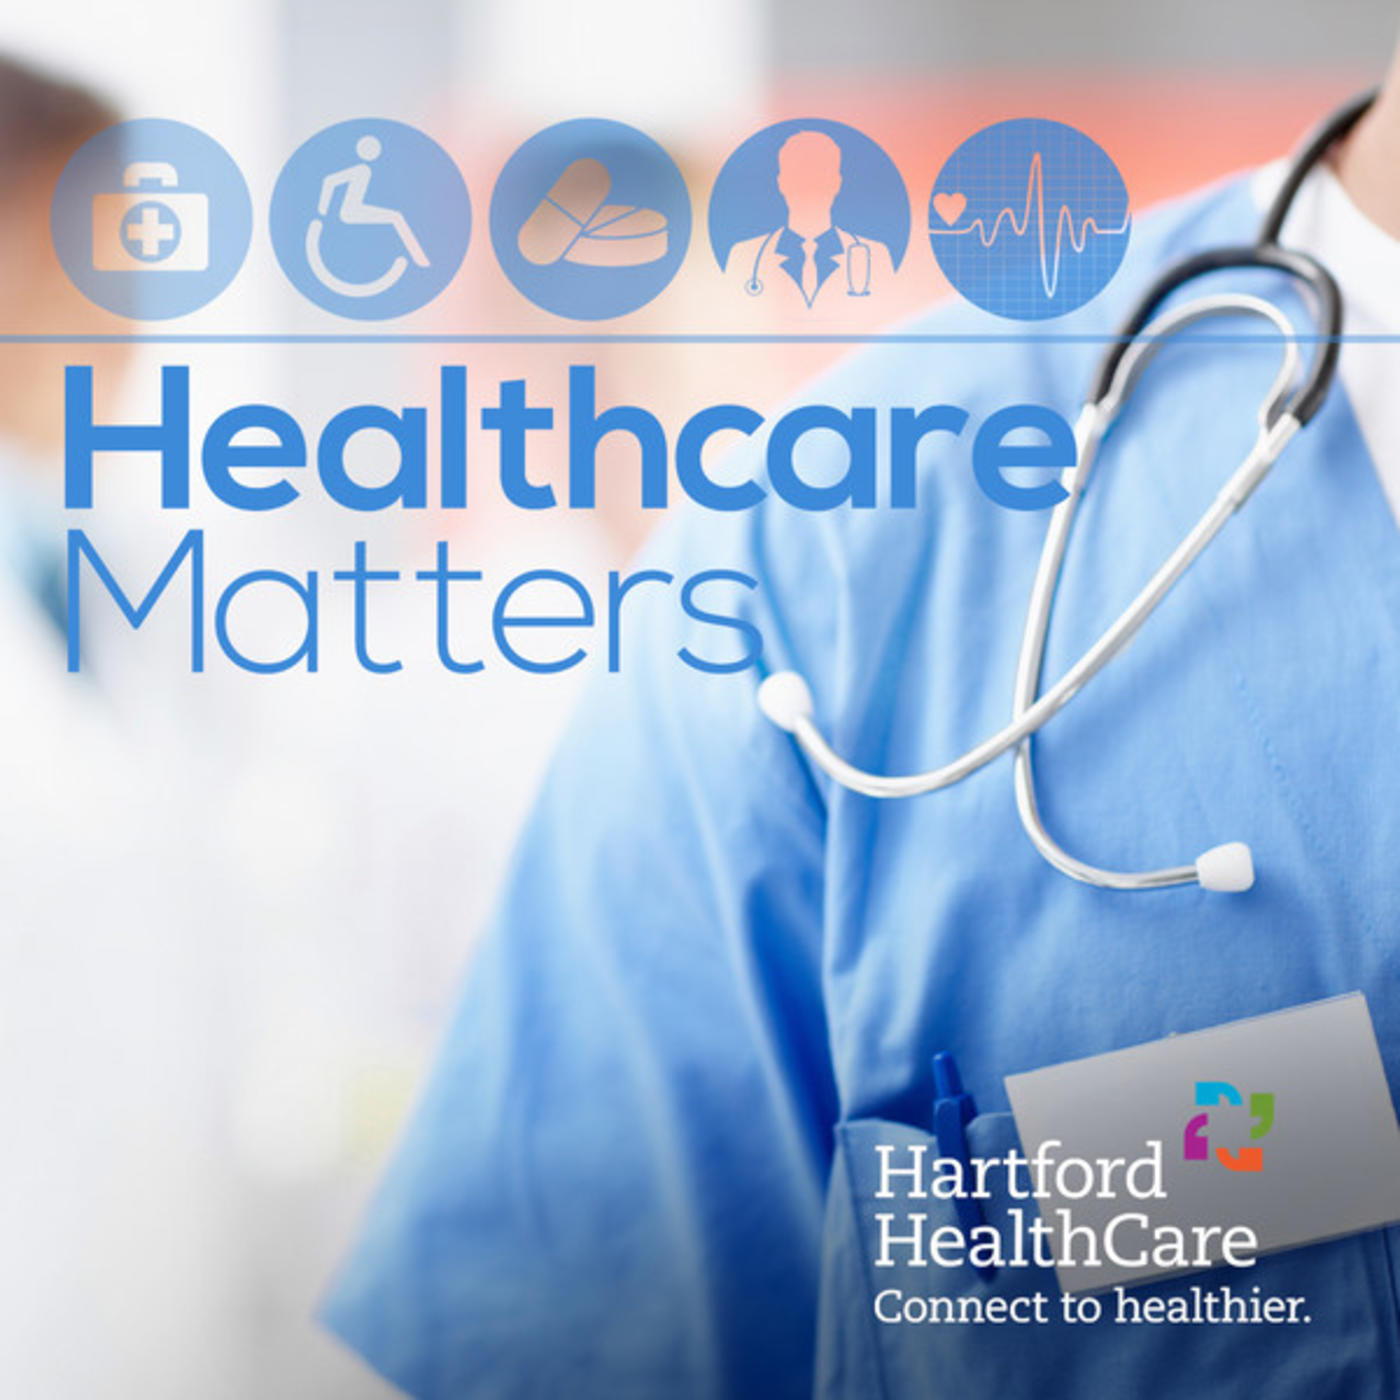 Health Care Matters with Hartford HealthCare